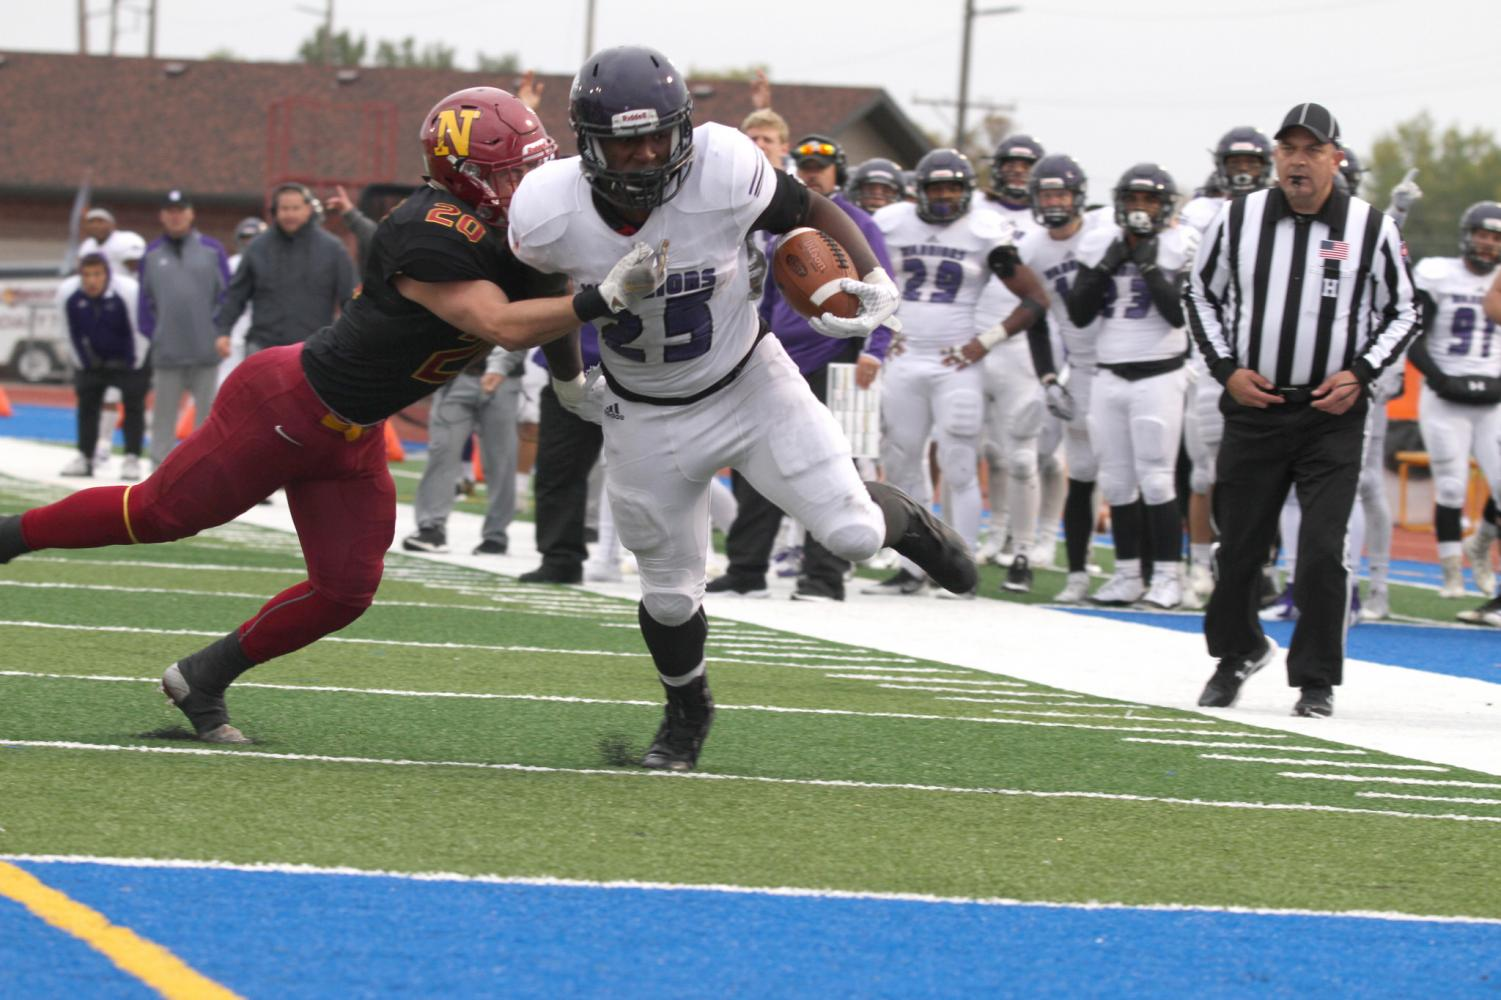 Senior running back Eric Birth runs towards the end zone to take the lead in the fourth quarter against Northern State University where the Warriors won 22-15 on Saturday, Sept. 29.